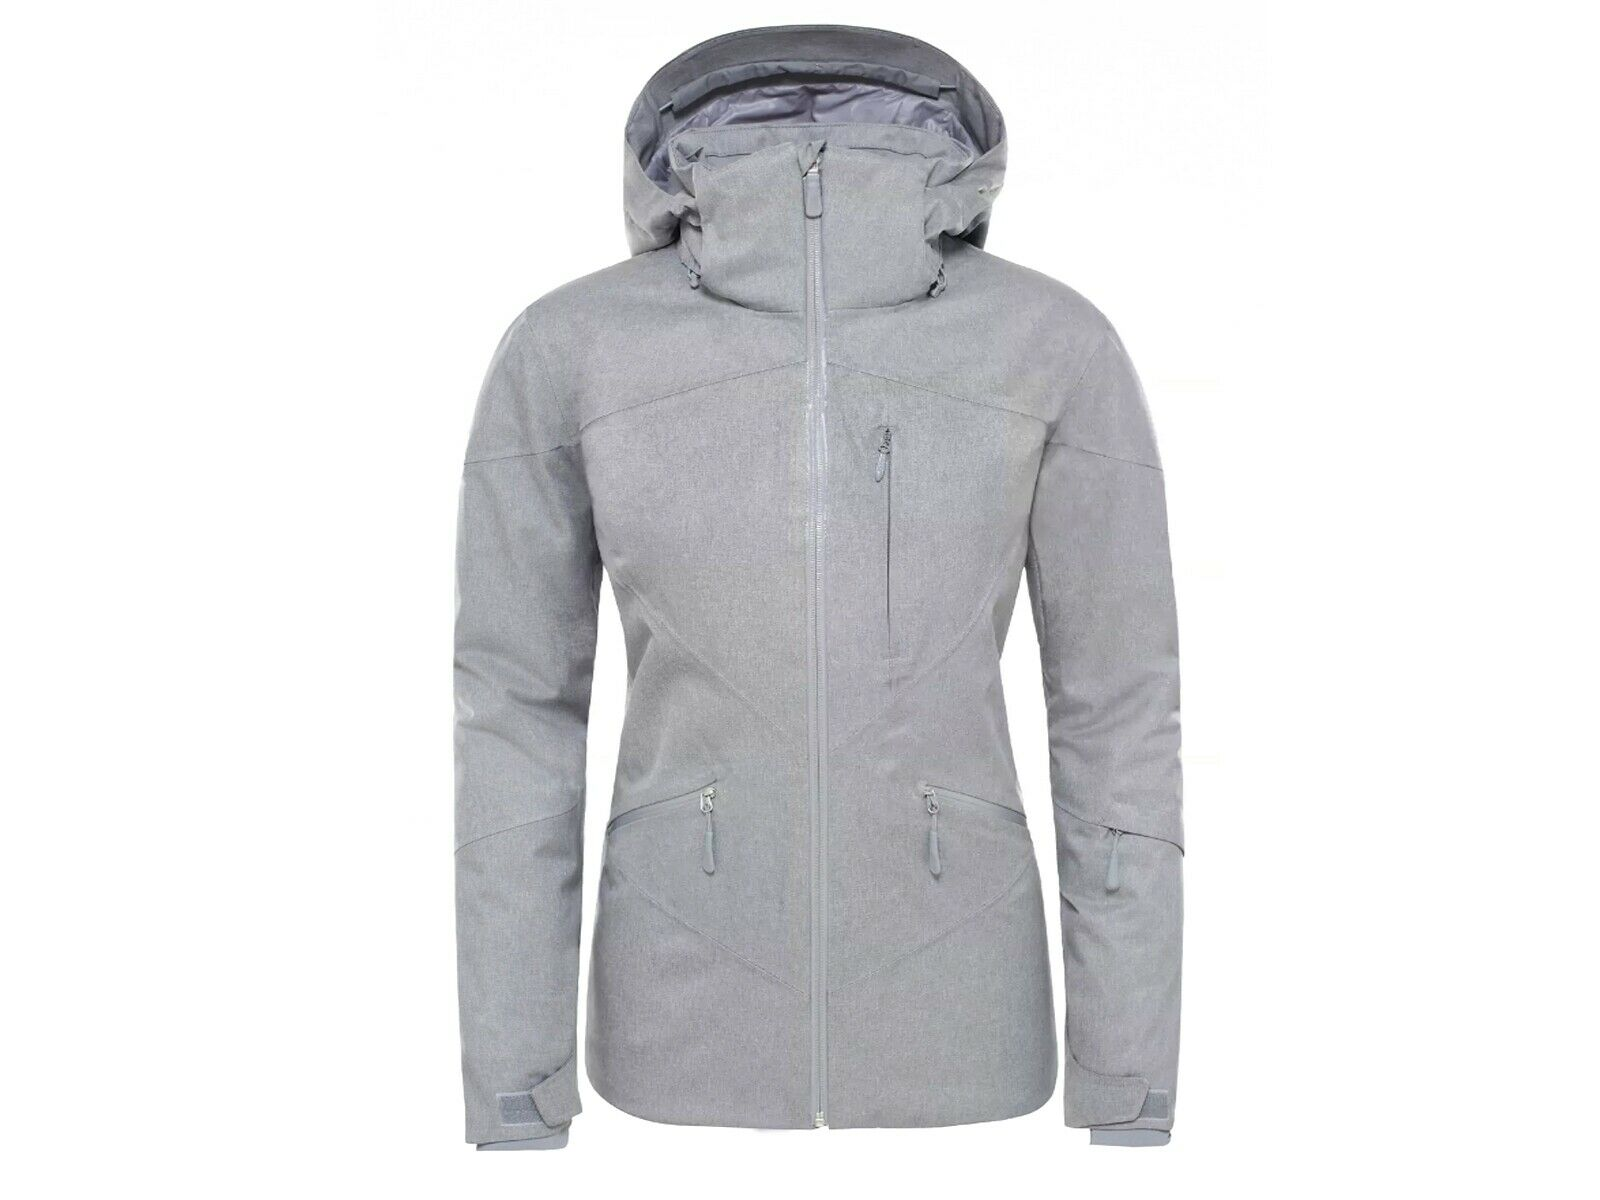 GIACCA SCI DONNA THE NORTH FACE  3M5BX8A  W LENADO MIDgrigioHEATHER